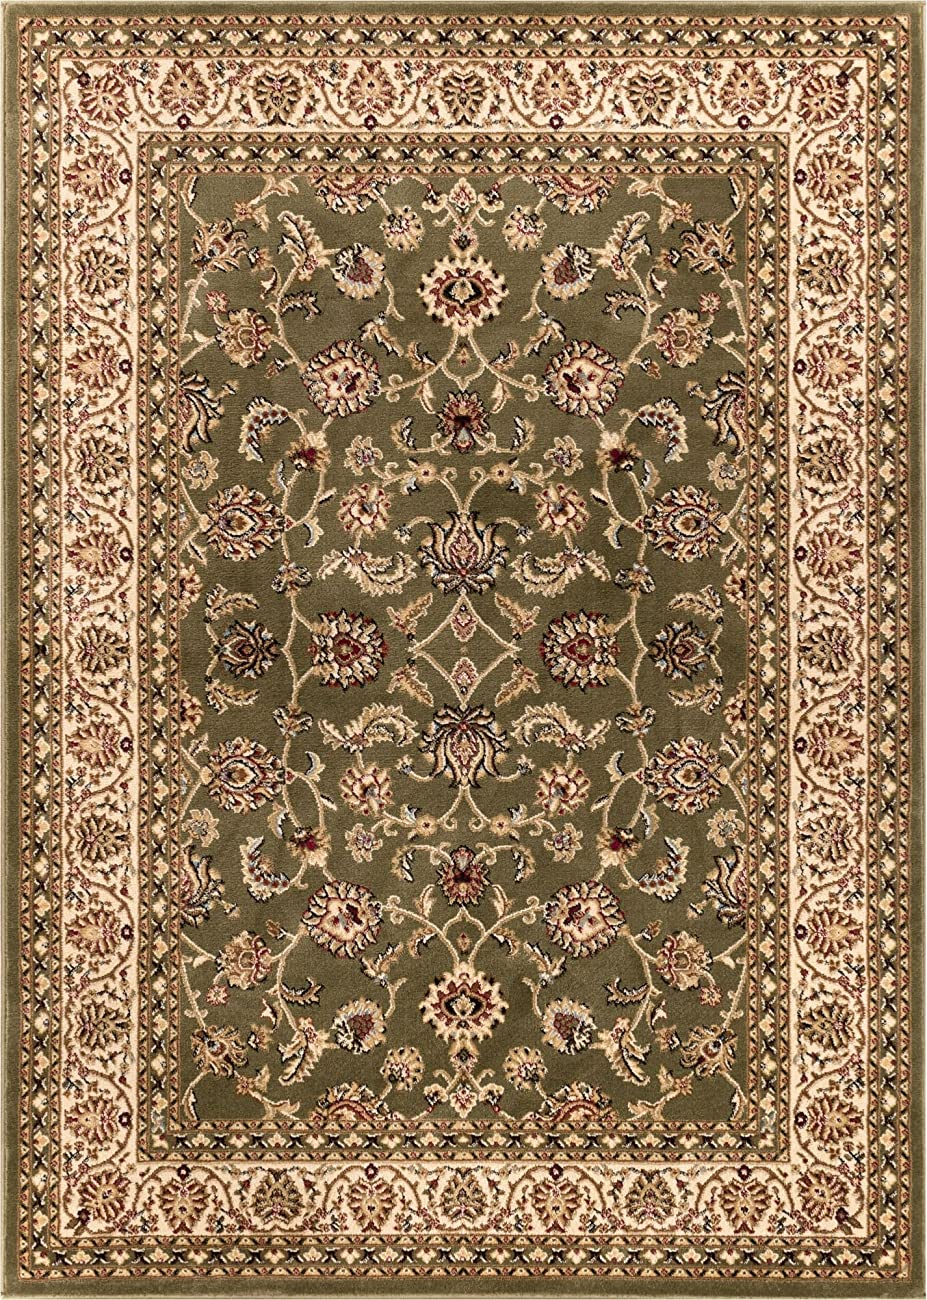 Antique Classic Green 3'11'' x 5'3'' Area Rug Oriental Floral Motif Detailed Classic Pattern Persian Living Dining Room Bedroom Hallway Office Carpet Easy Clean Rug Traditional Soft Plush Quality 1